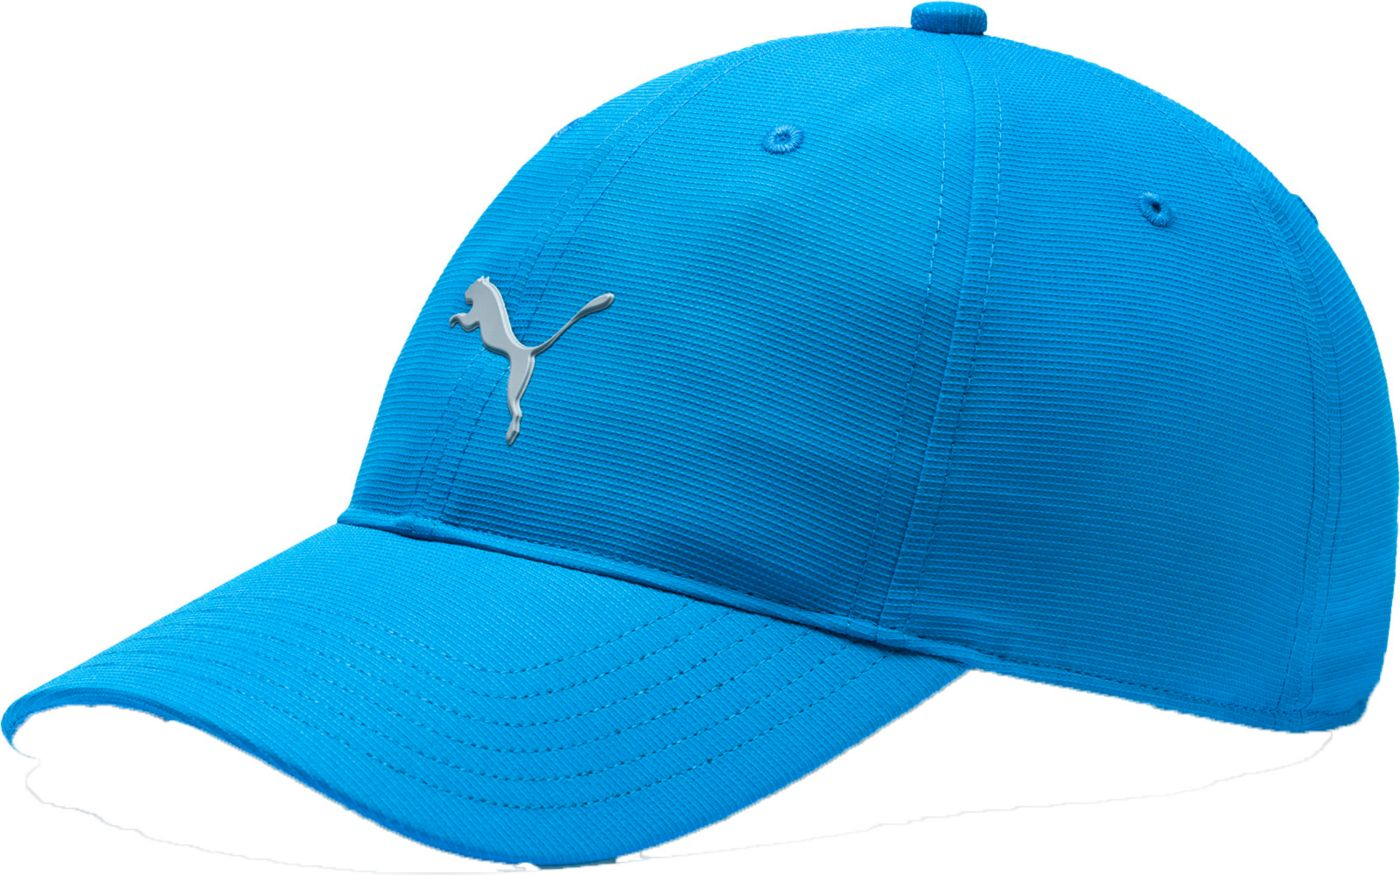 PUMA Men's Pounce Golf Hat